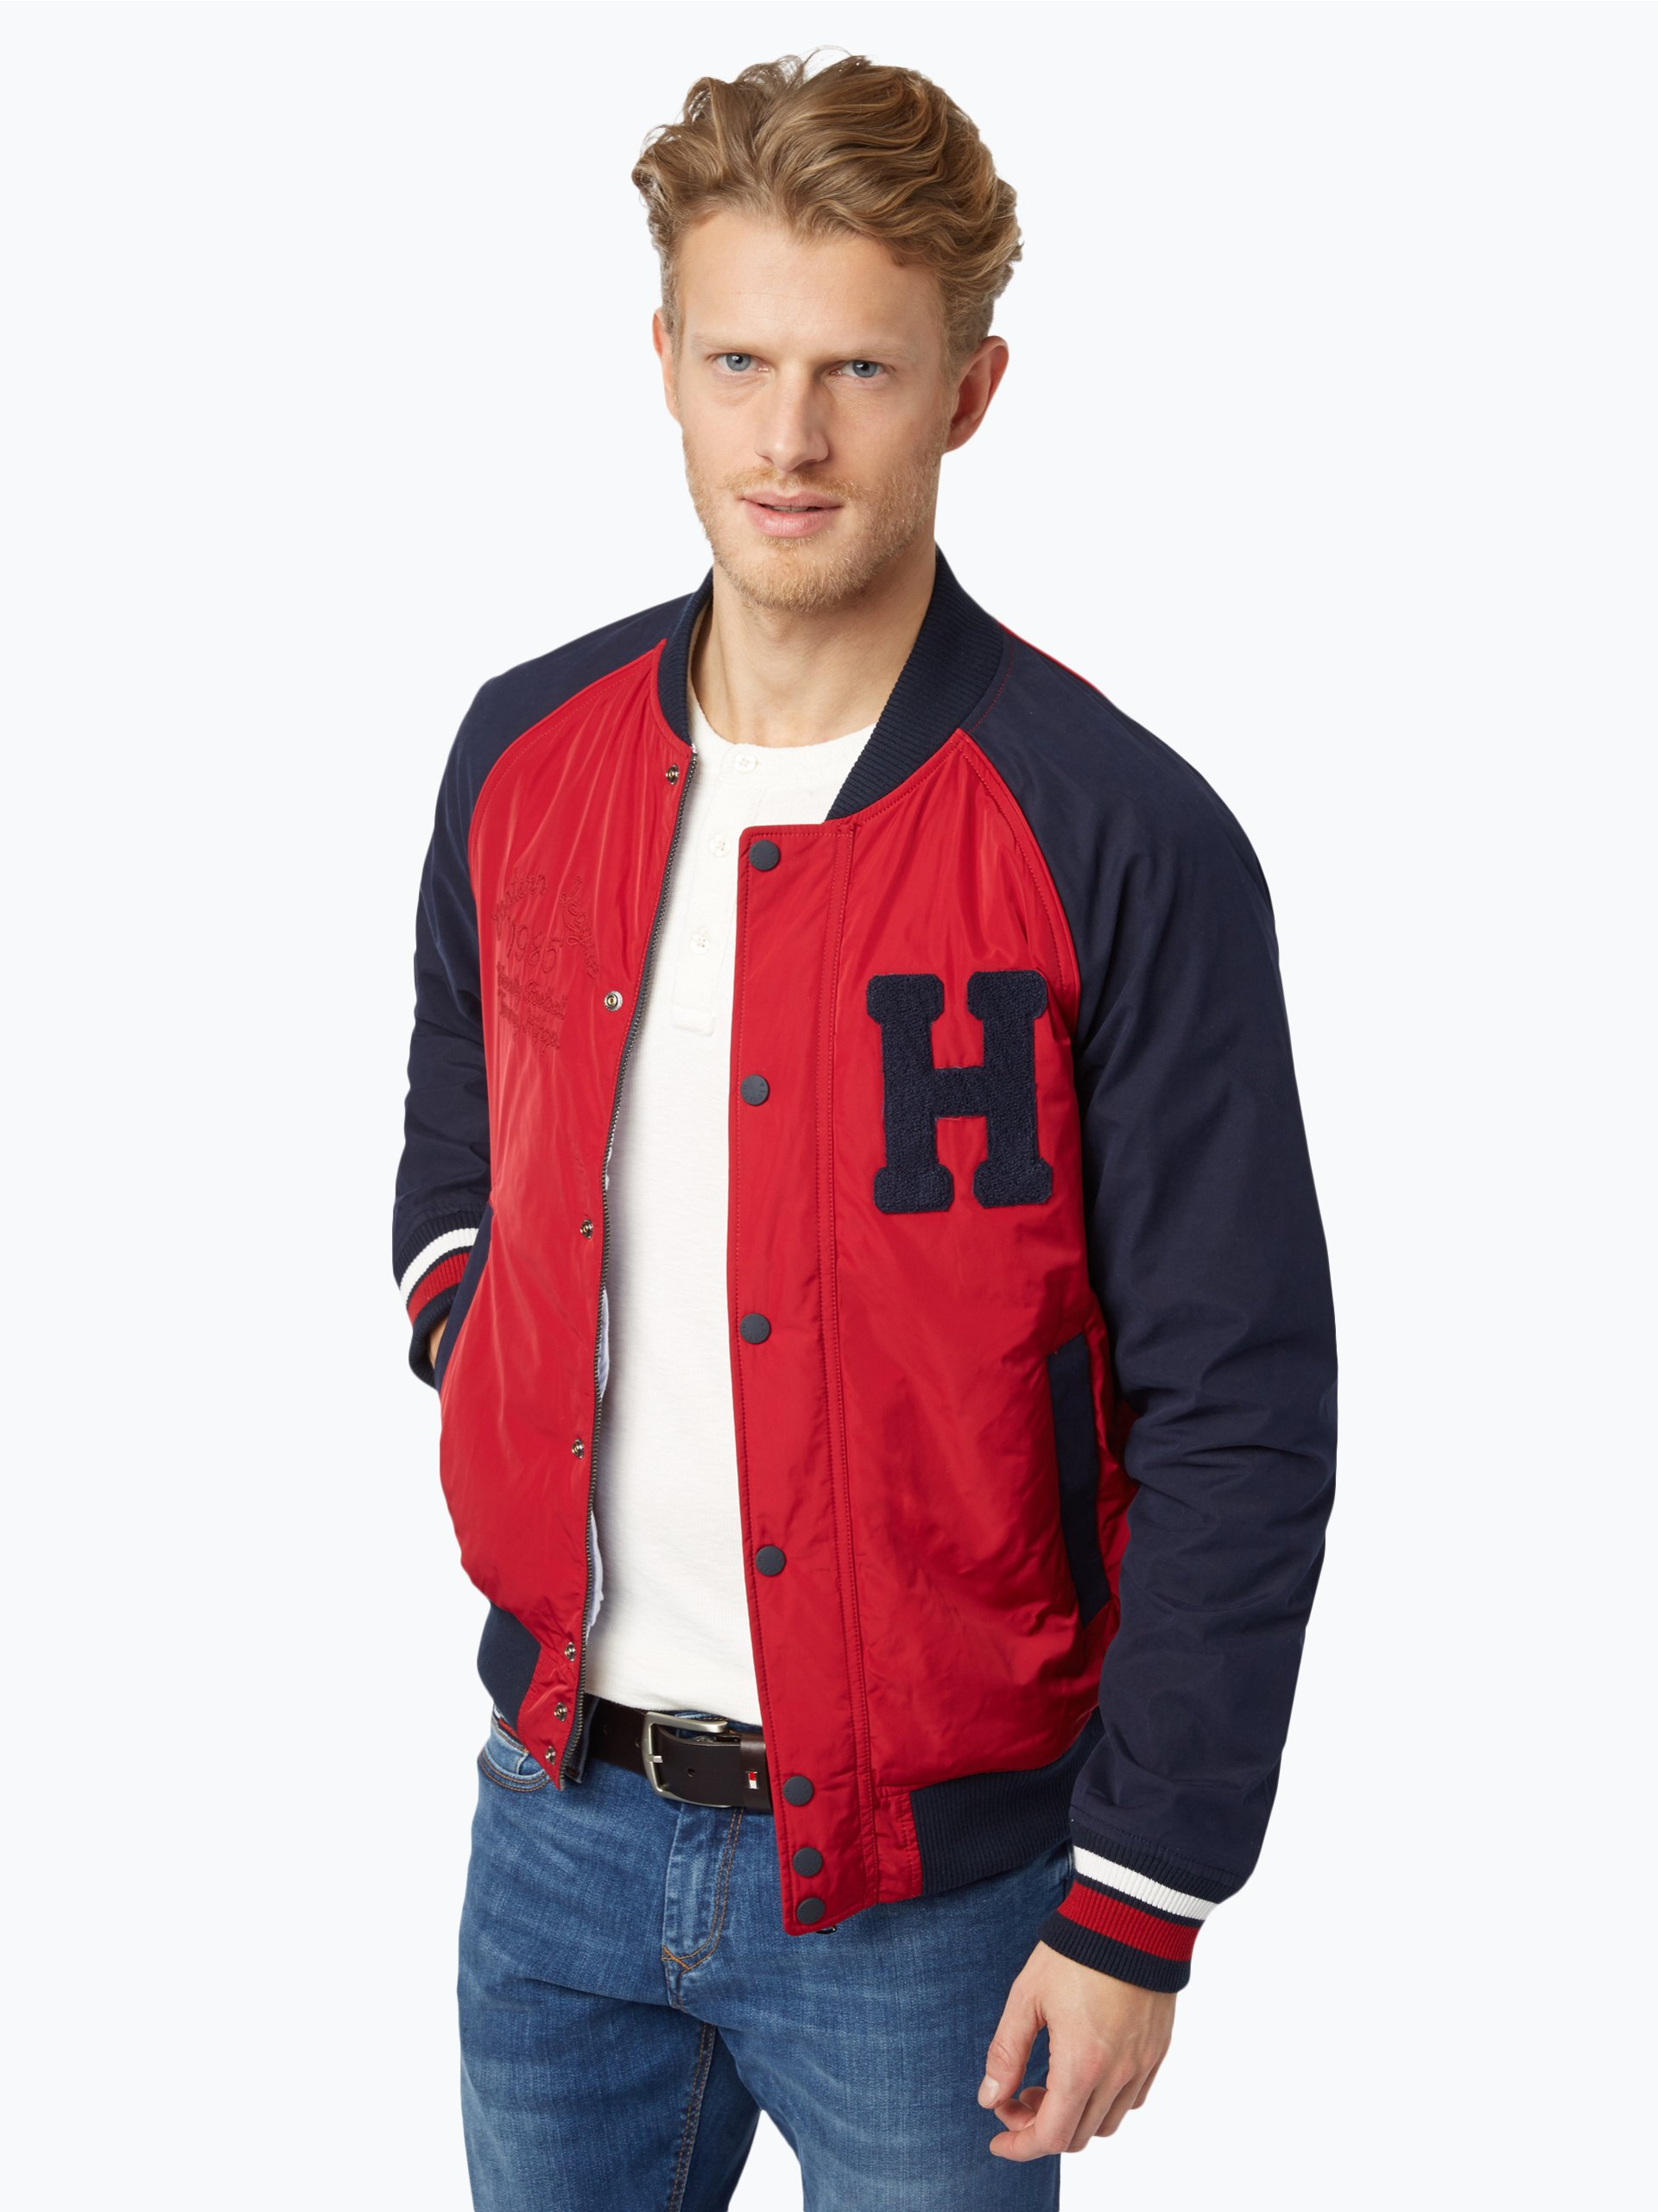 tommy hilfiger herren jacke online kaufen vangraaf com. Black Bedroom Furniture Sets. Home Design Ideas